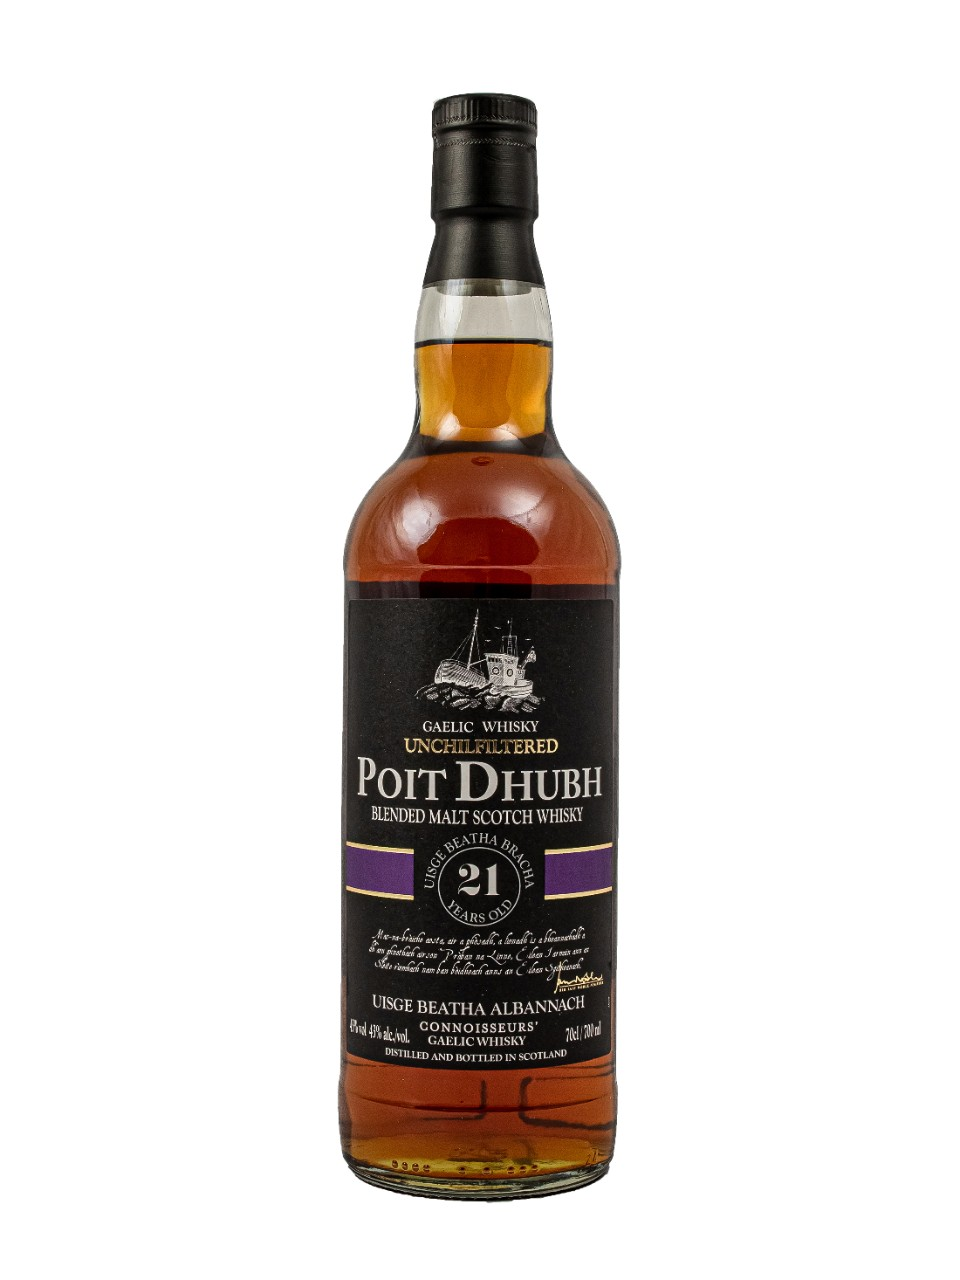 Pràban na Linne Poit Dhubh 21 Year Old Blended Malt Scotch Whisky from LCBO